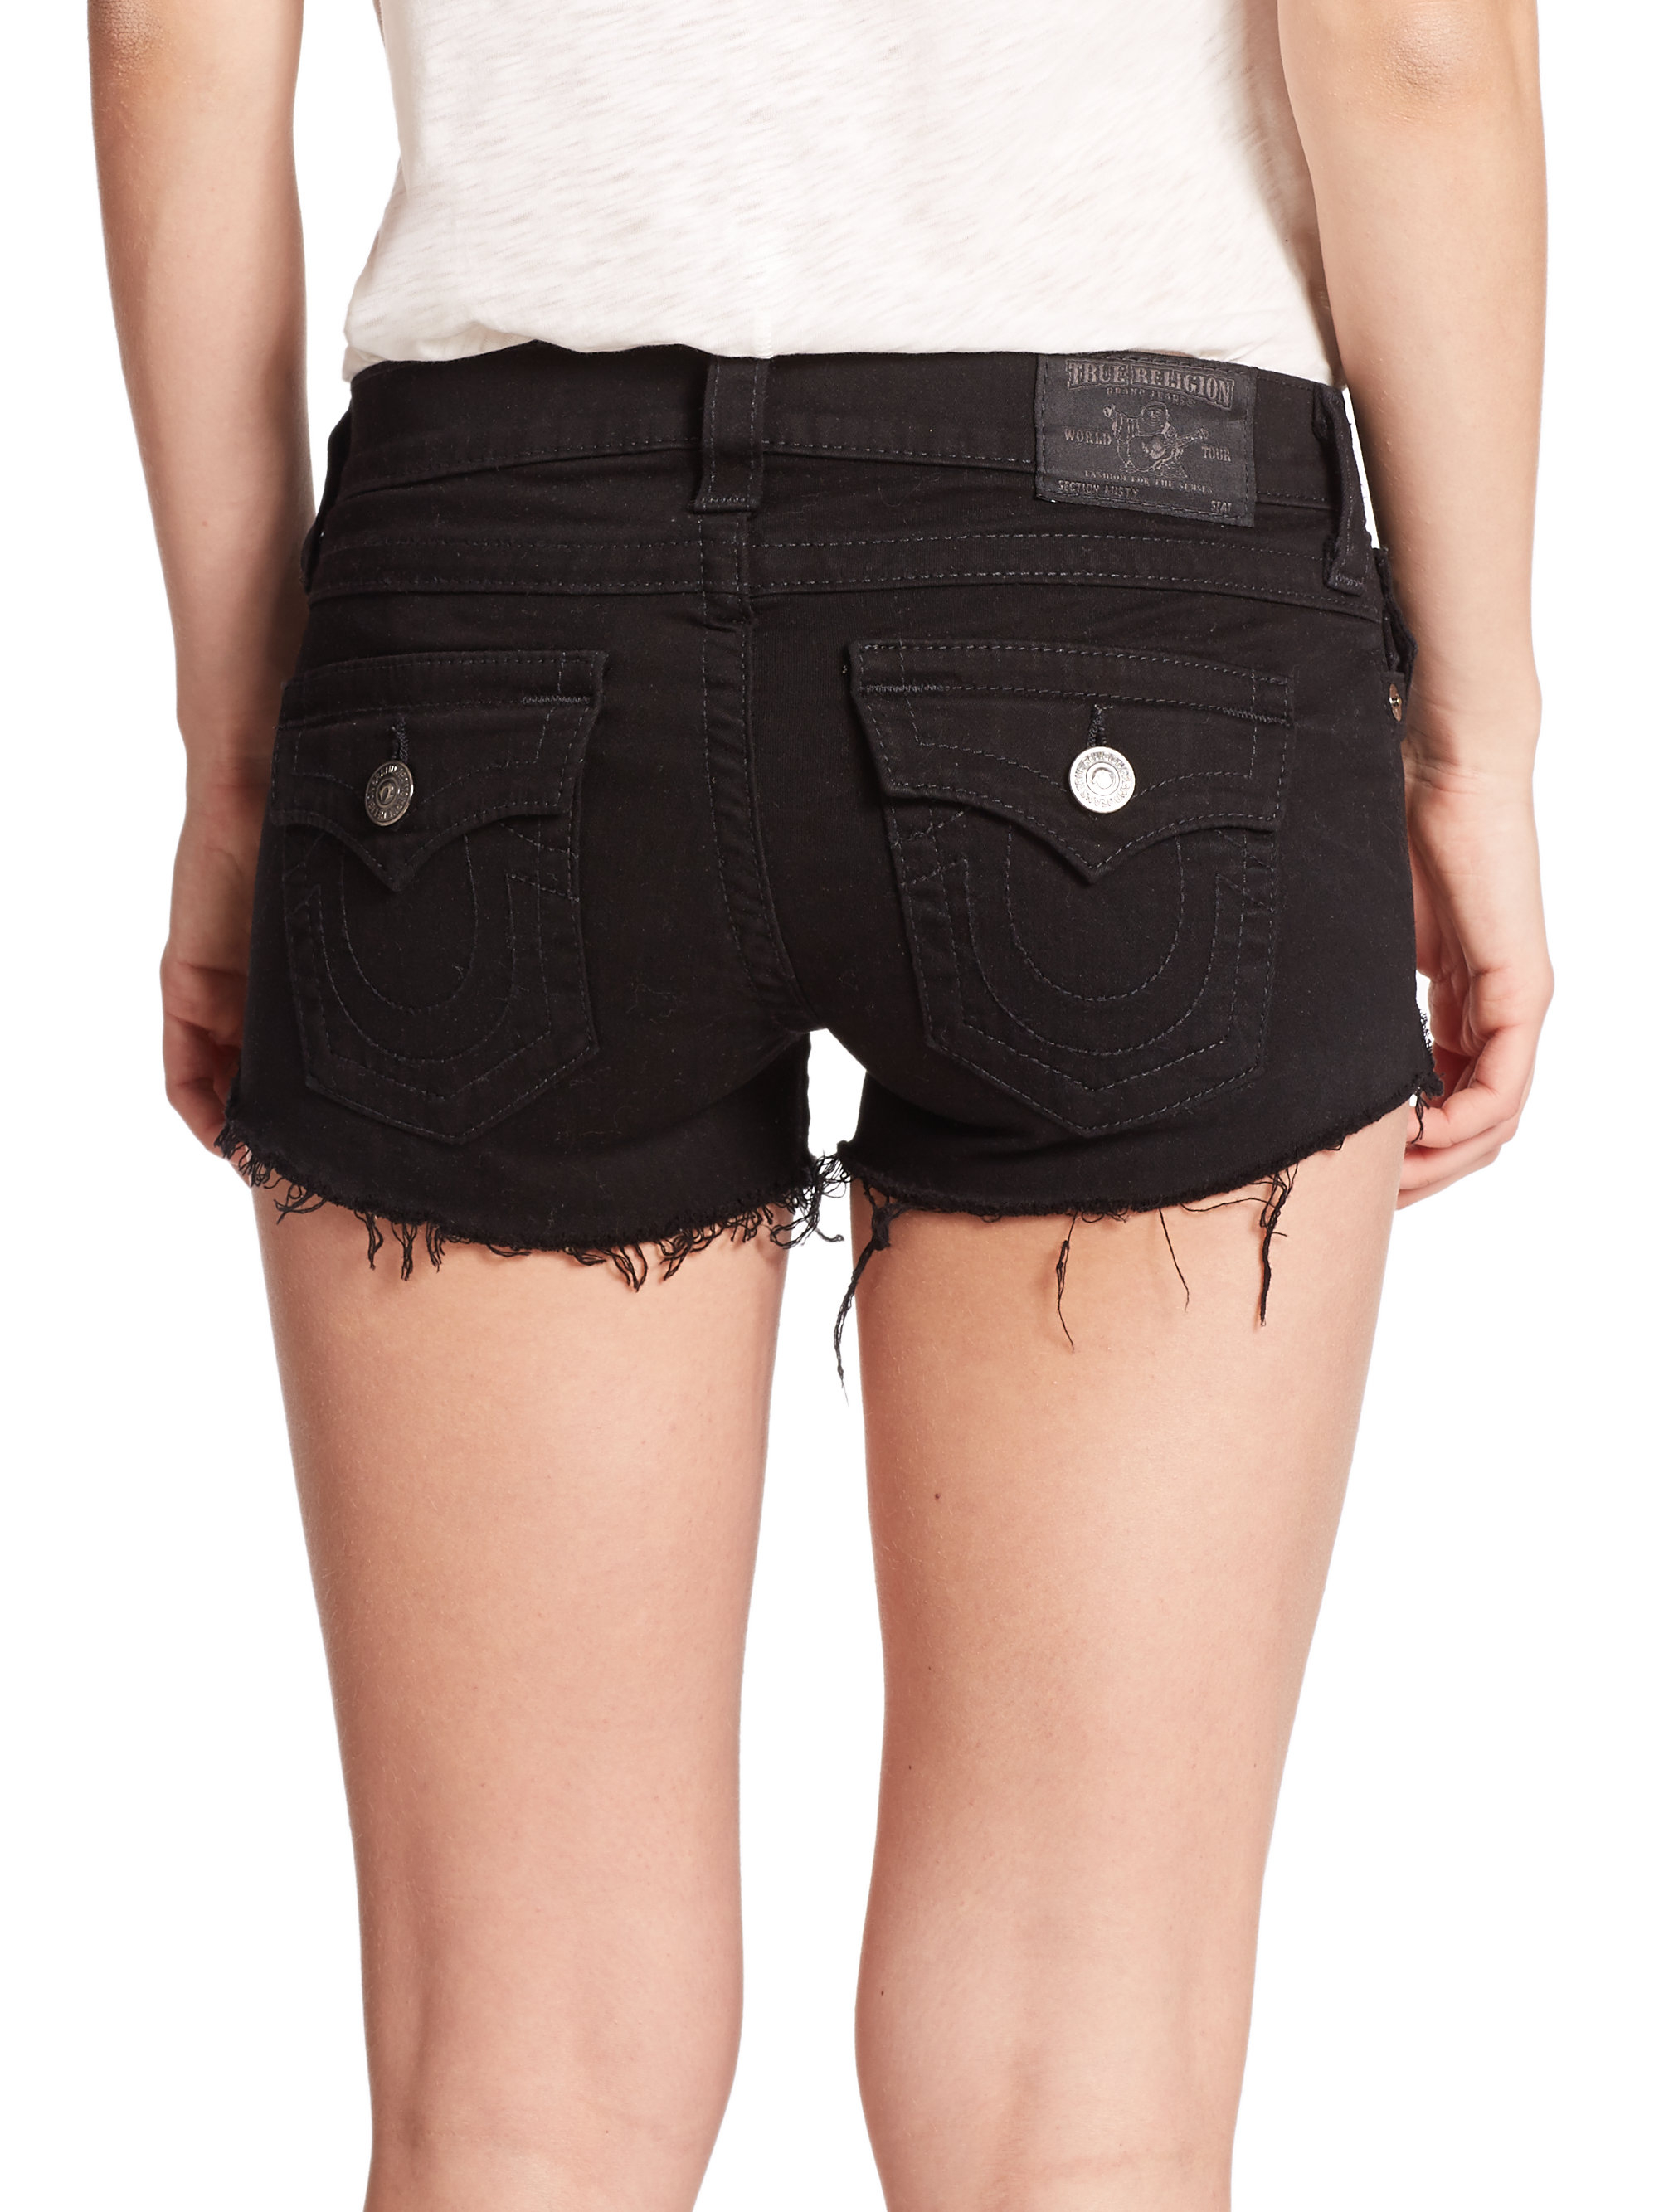 Lyst - True Religion Joey Cut-off Denim Shorts in Blue